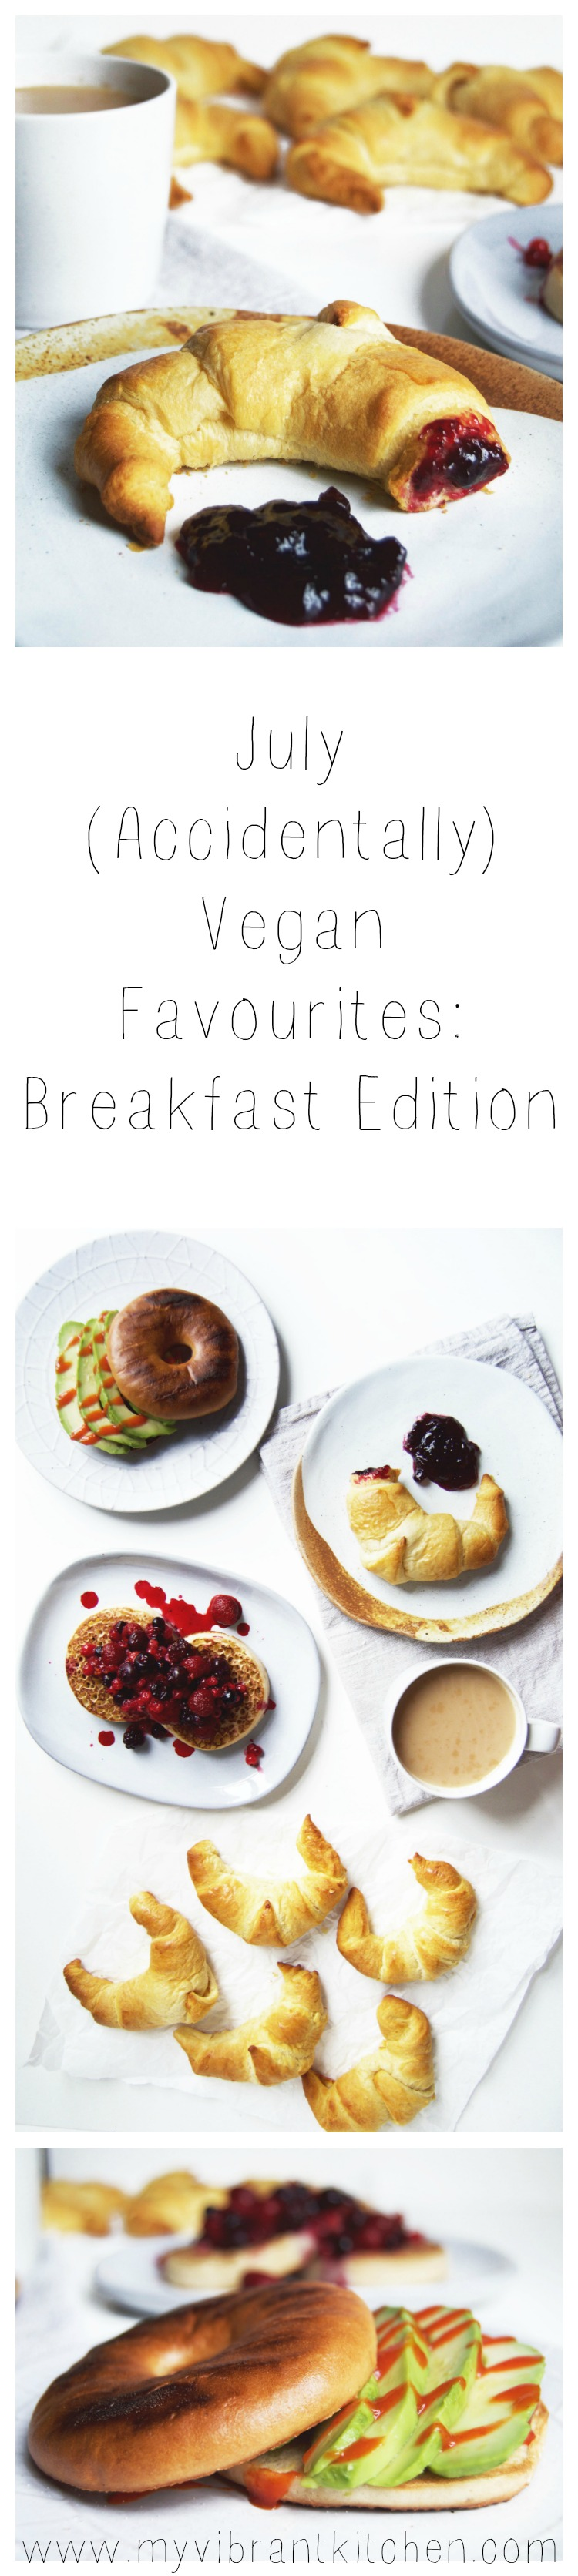 My Vibrant Kitchen | July (Accidentally) Vegan Favourites: Breakfast Edition | myvibrantkitchen.com